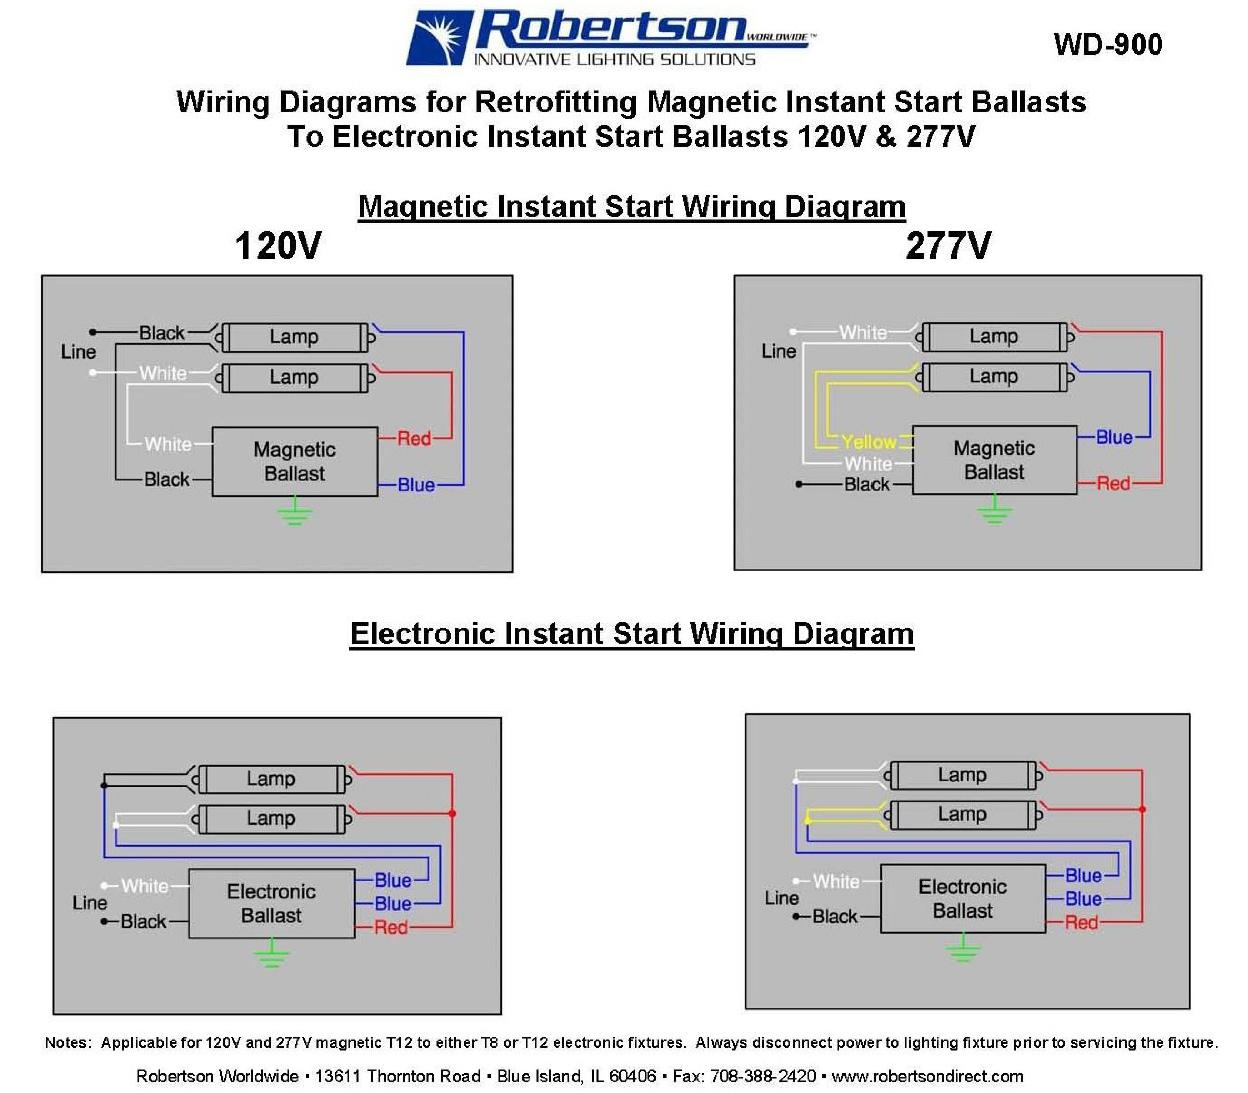 4 Lamp 2 Ballast Wiring Diagram from diagramweb.net